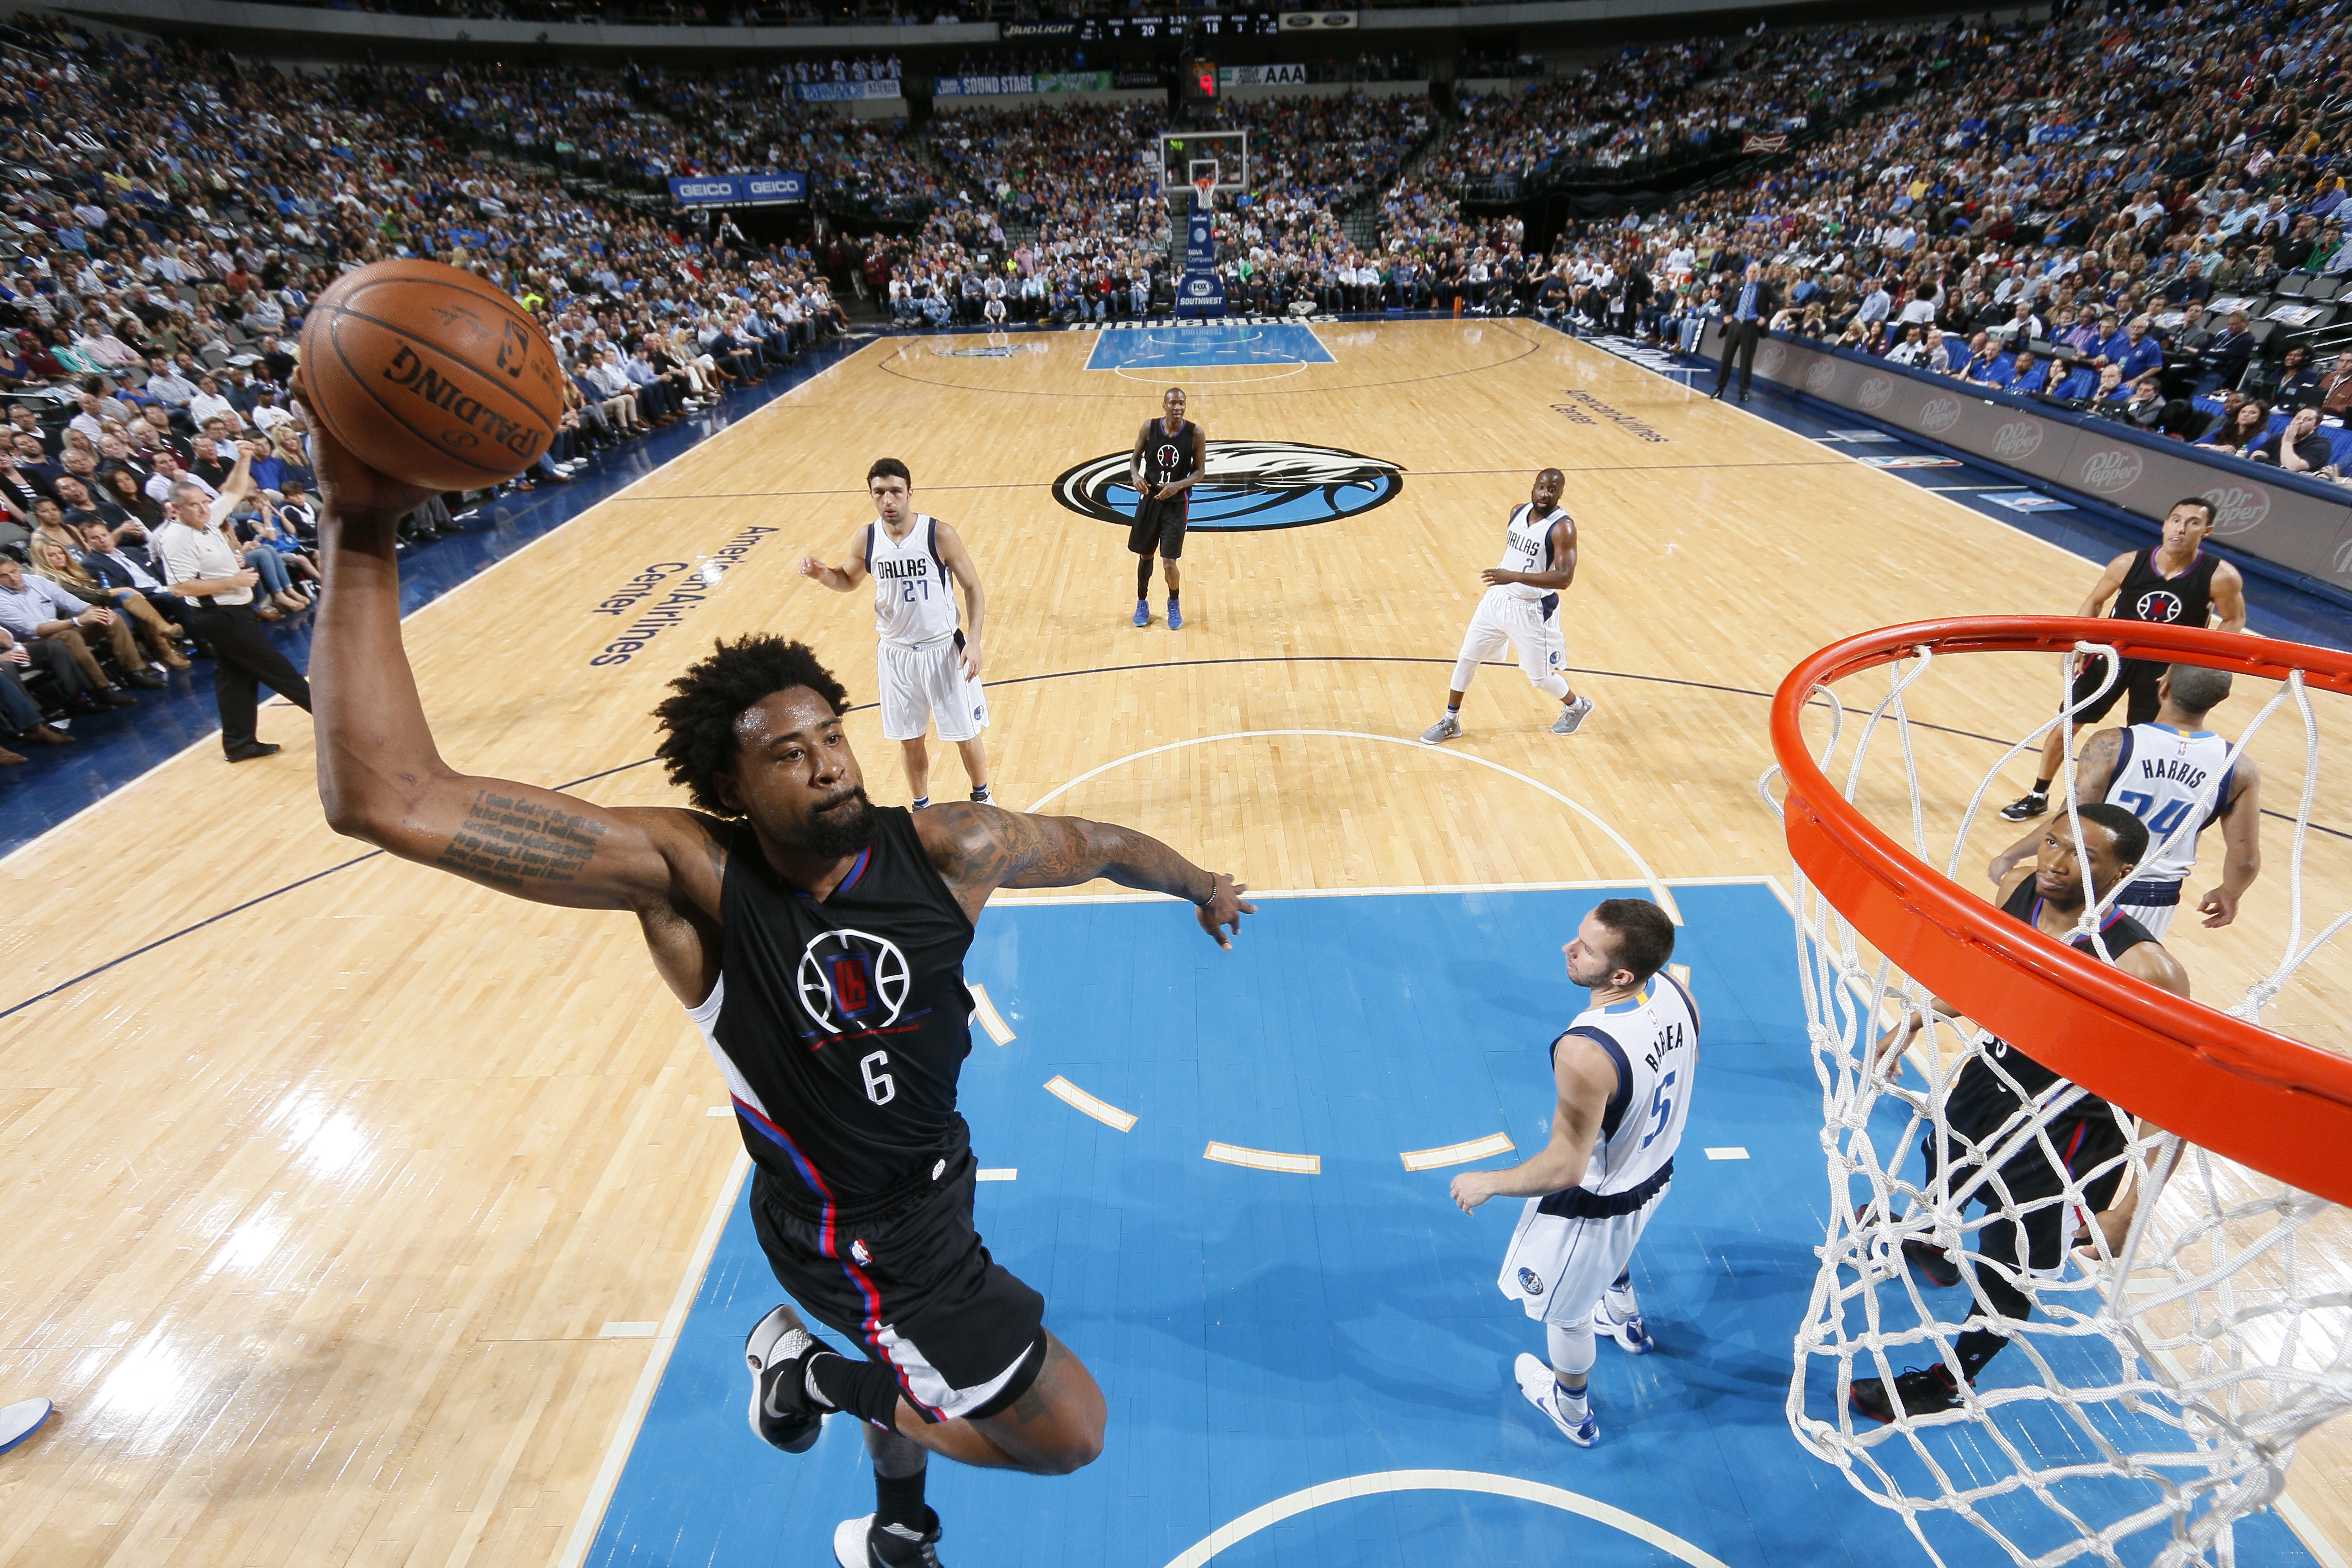 DALLAS, TX - MARCH 7: DeAndre Jordan #6 of the Los Angeles Clippers goes in for the dunk against the Dallas Mavericks on March 7, 2016 at the American Airlines Center in Dallas, Texas. (Photo by Glenn James/NBAE via Getty Images)